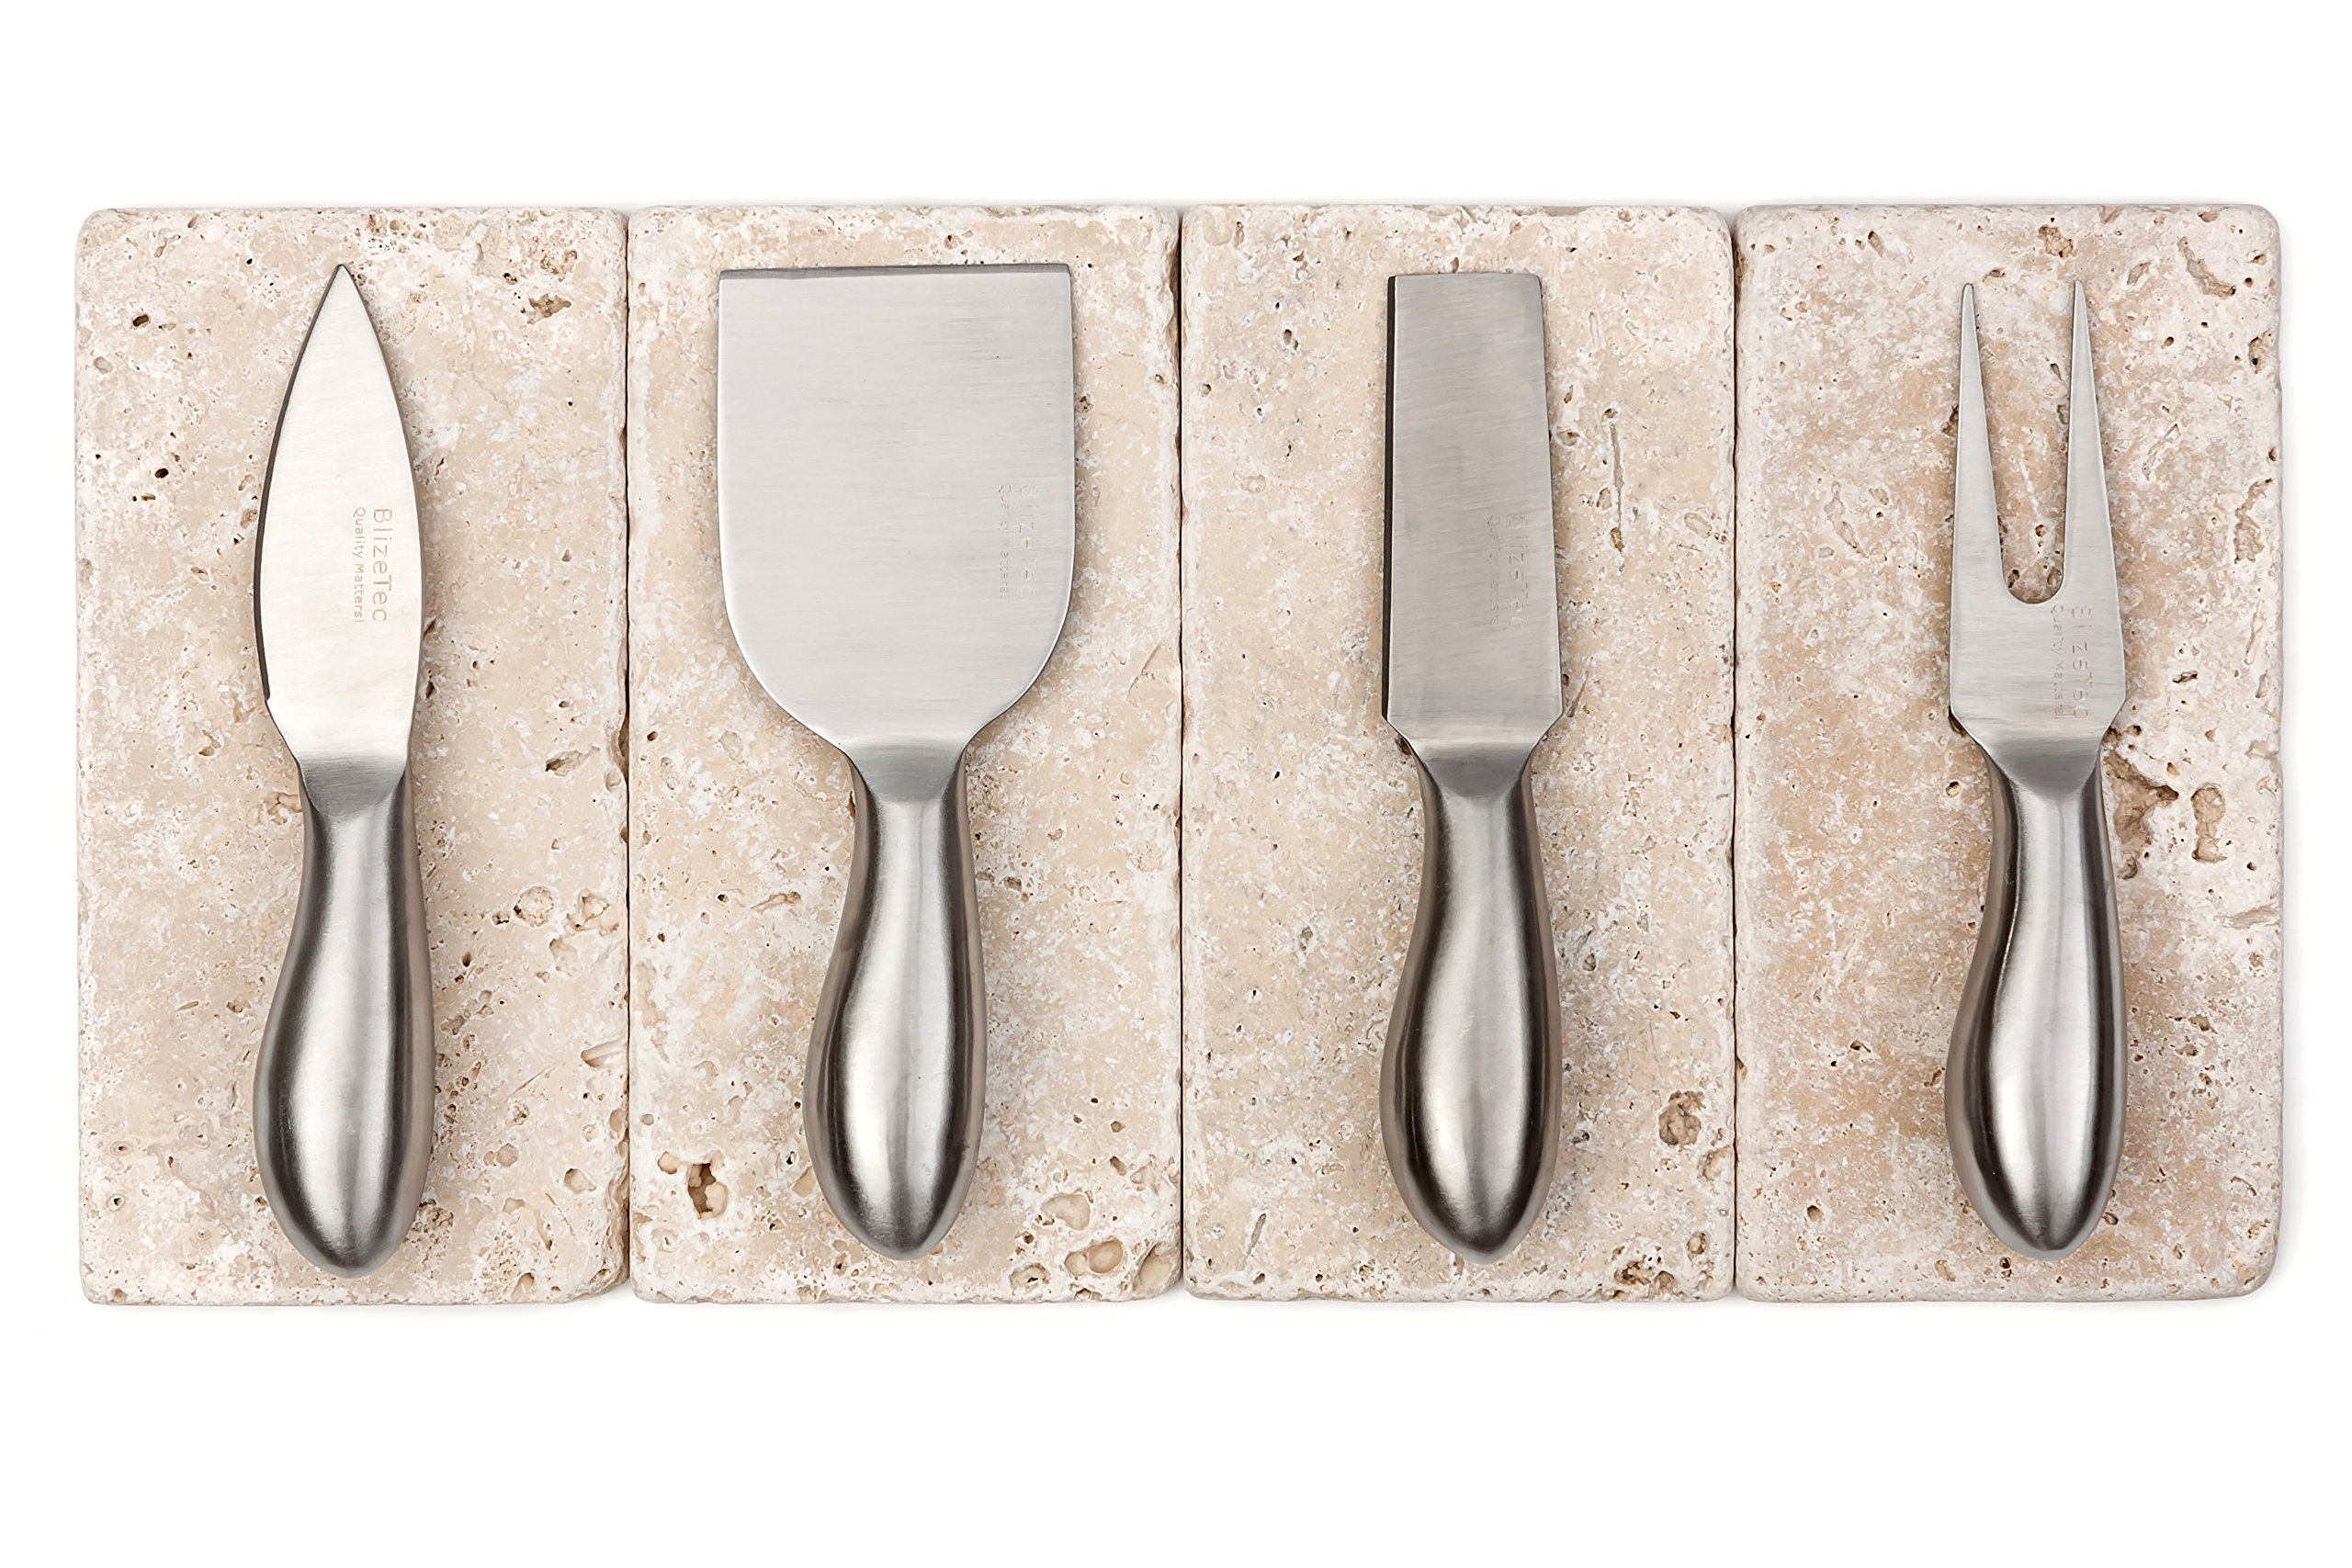 Cheese Knives: BlizeTec Cheese Slicer & Cutter Set (4 pcs) by BlizeTec (Image #4)